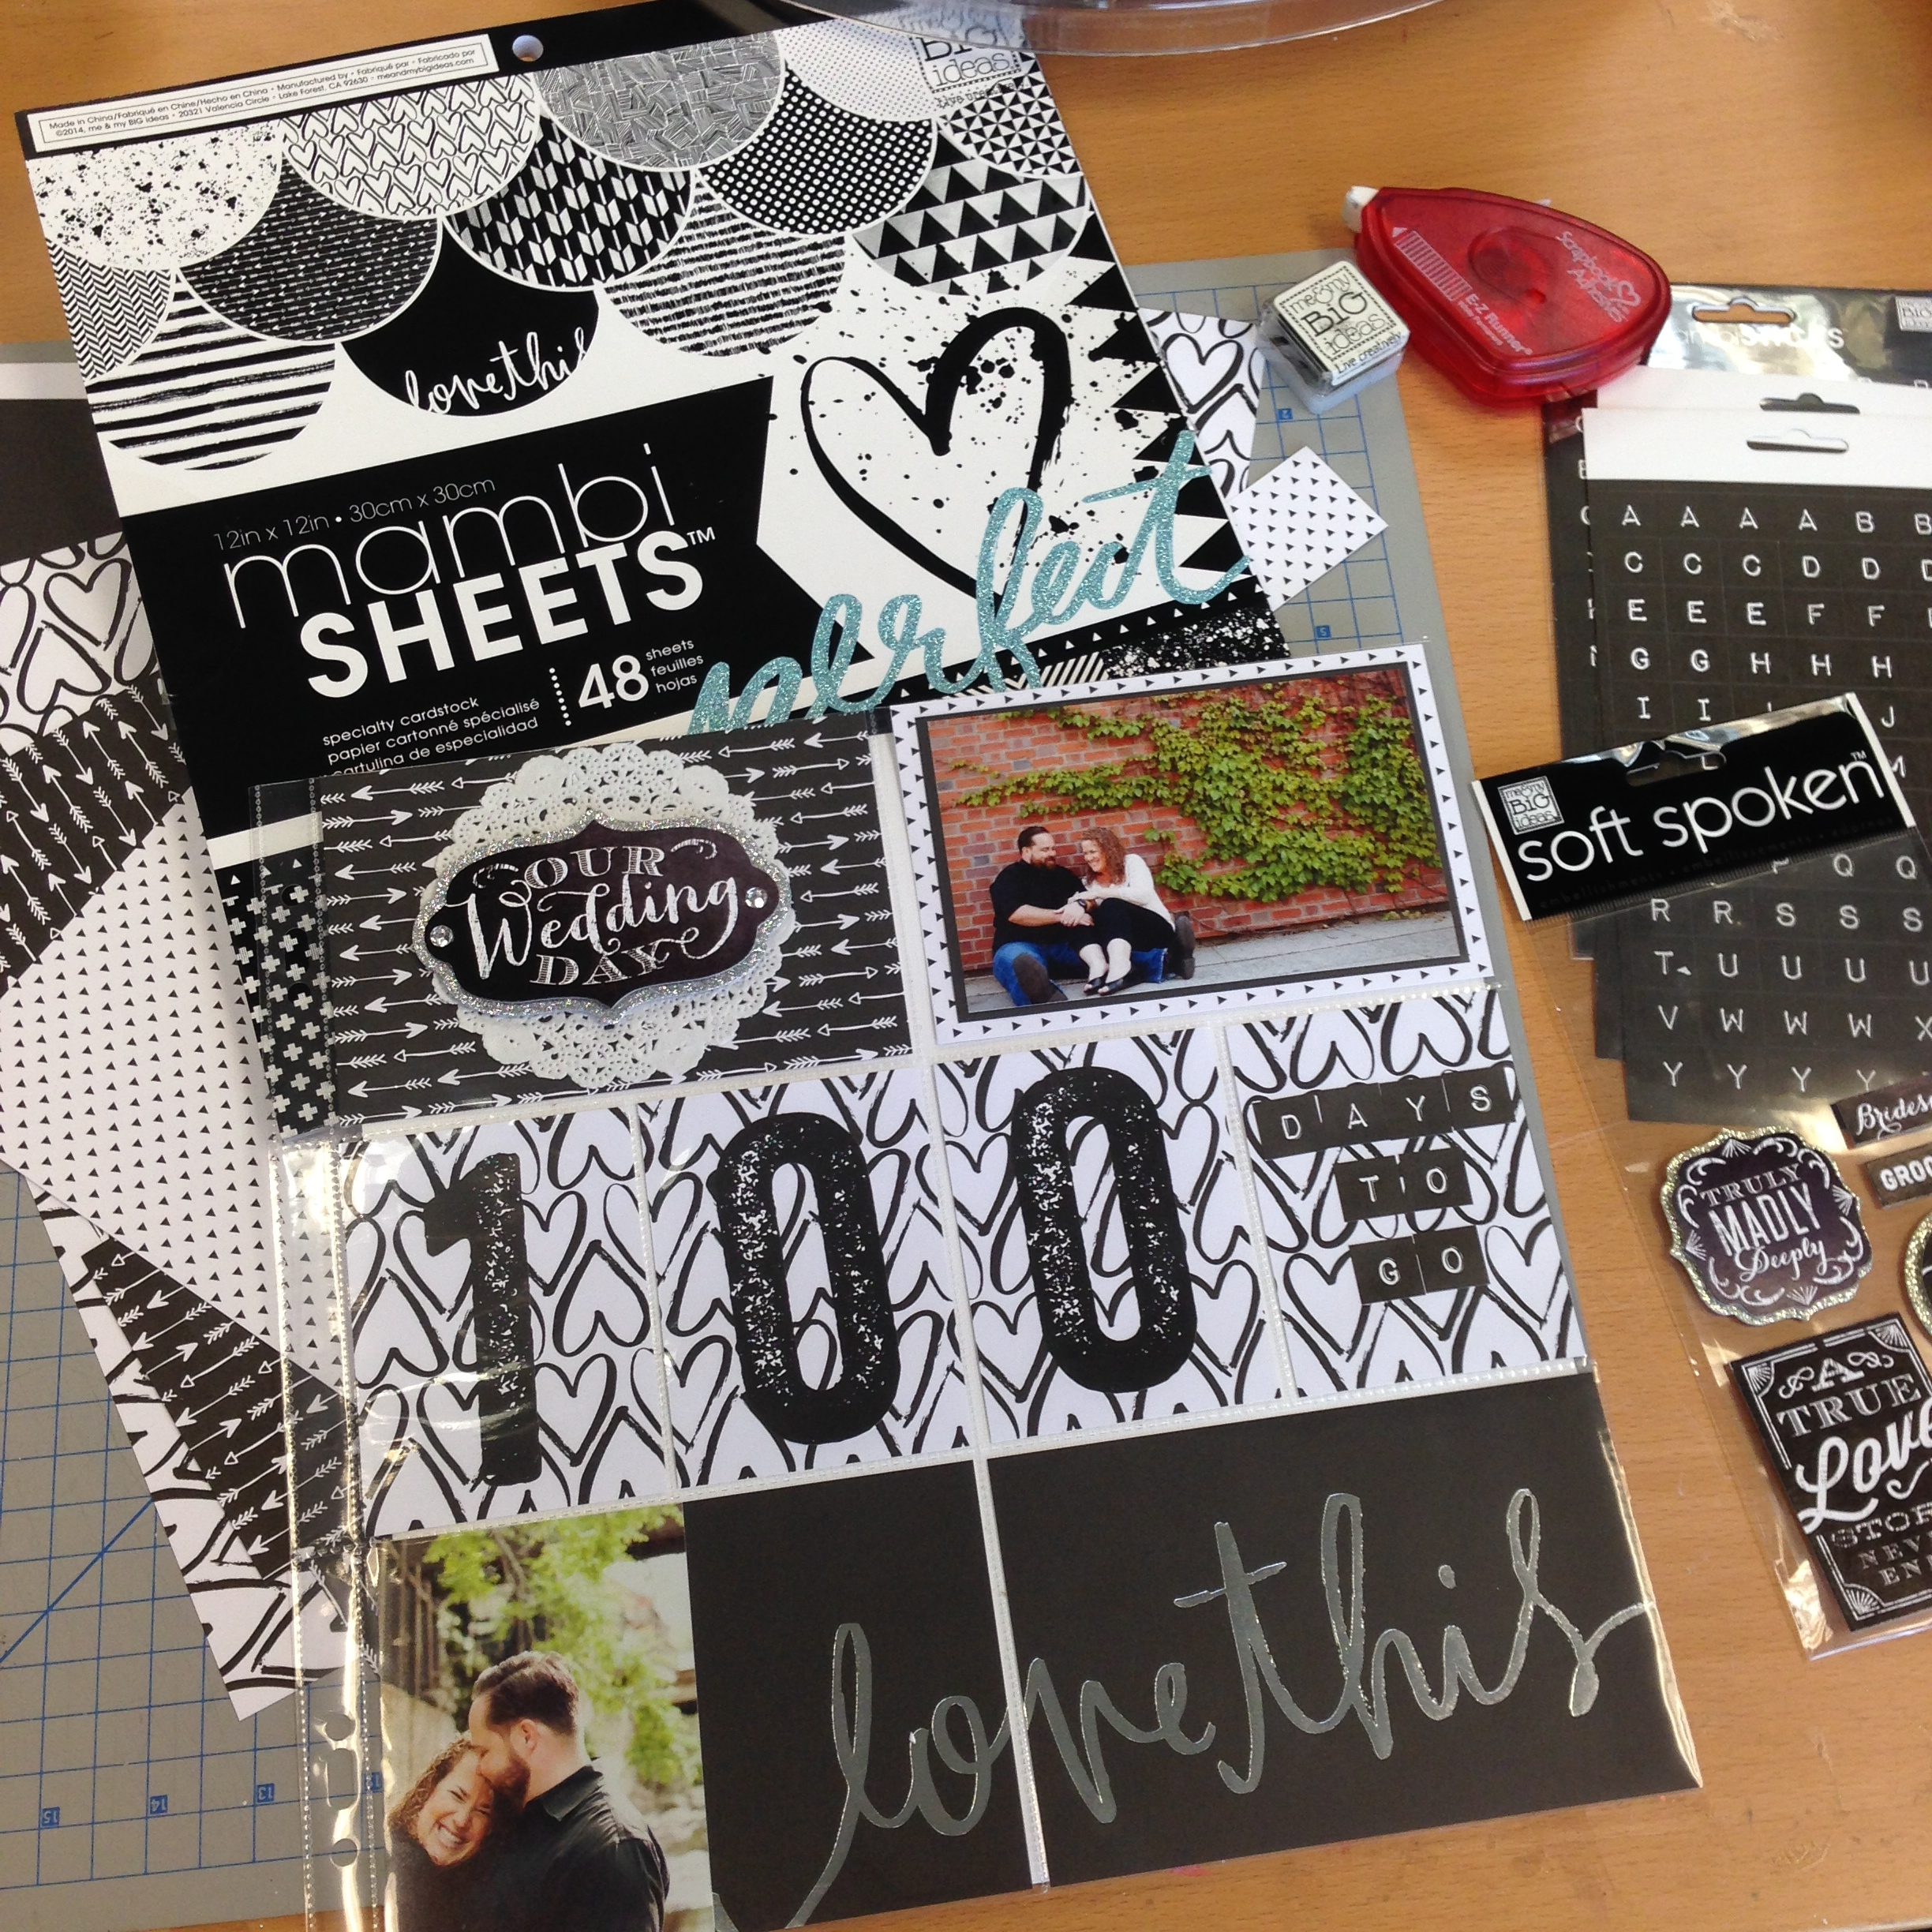 100 days to go wedding countdown scrapbook / POCKET PAGES layout.